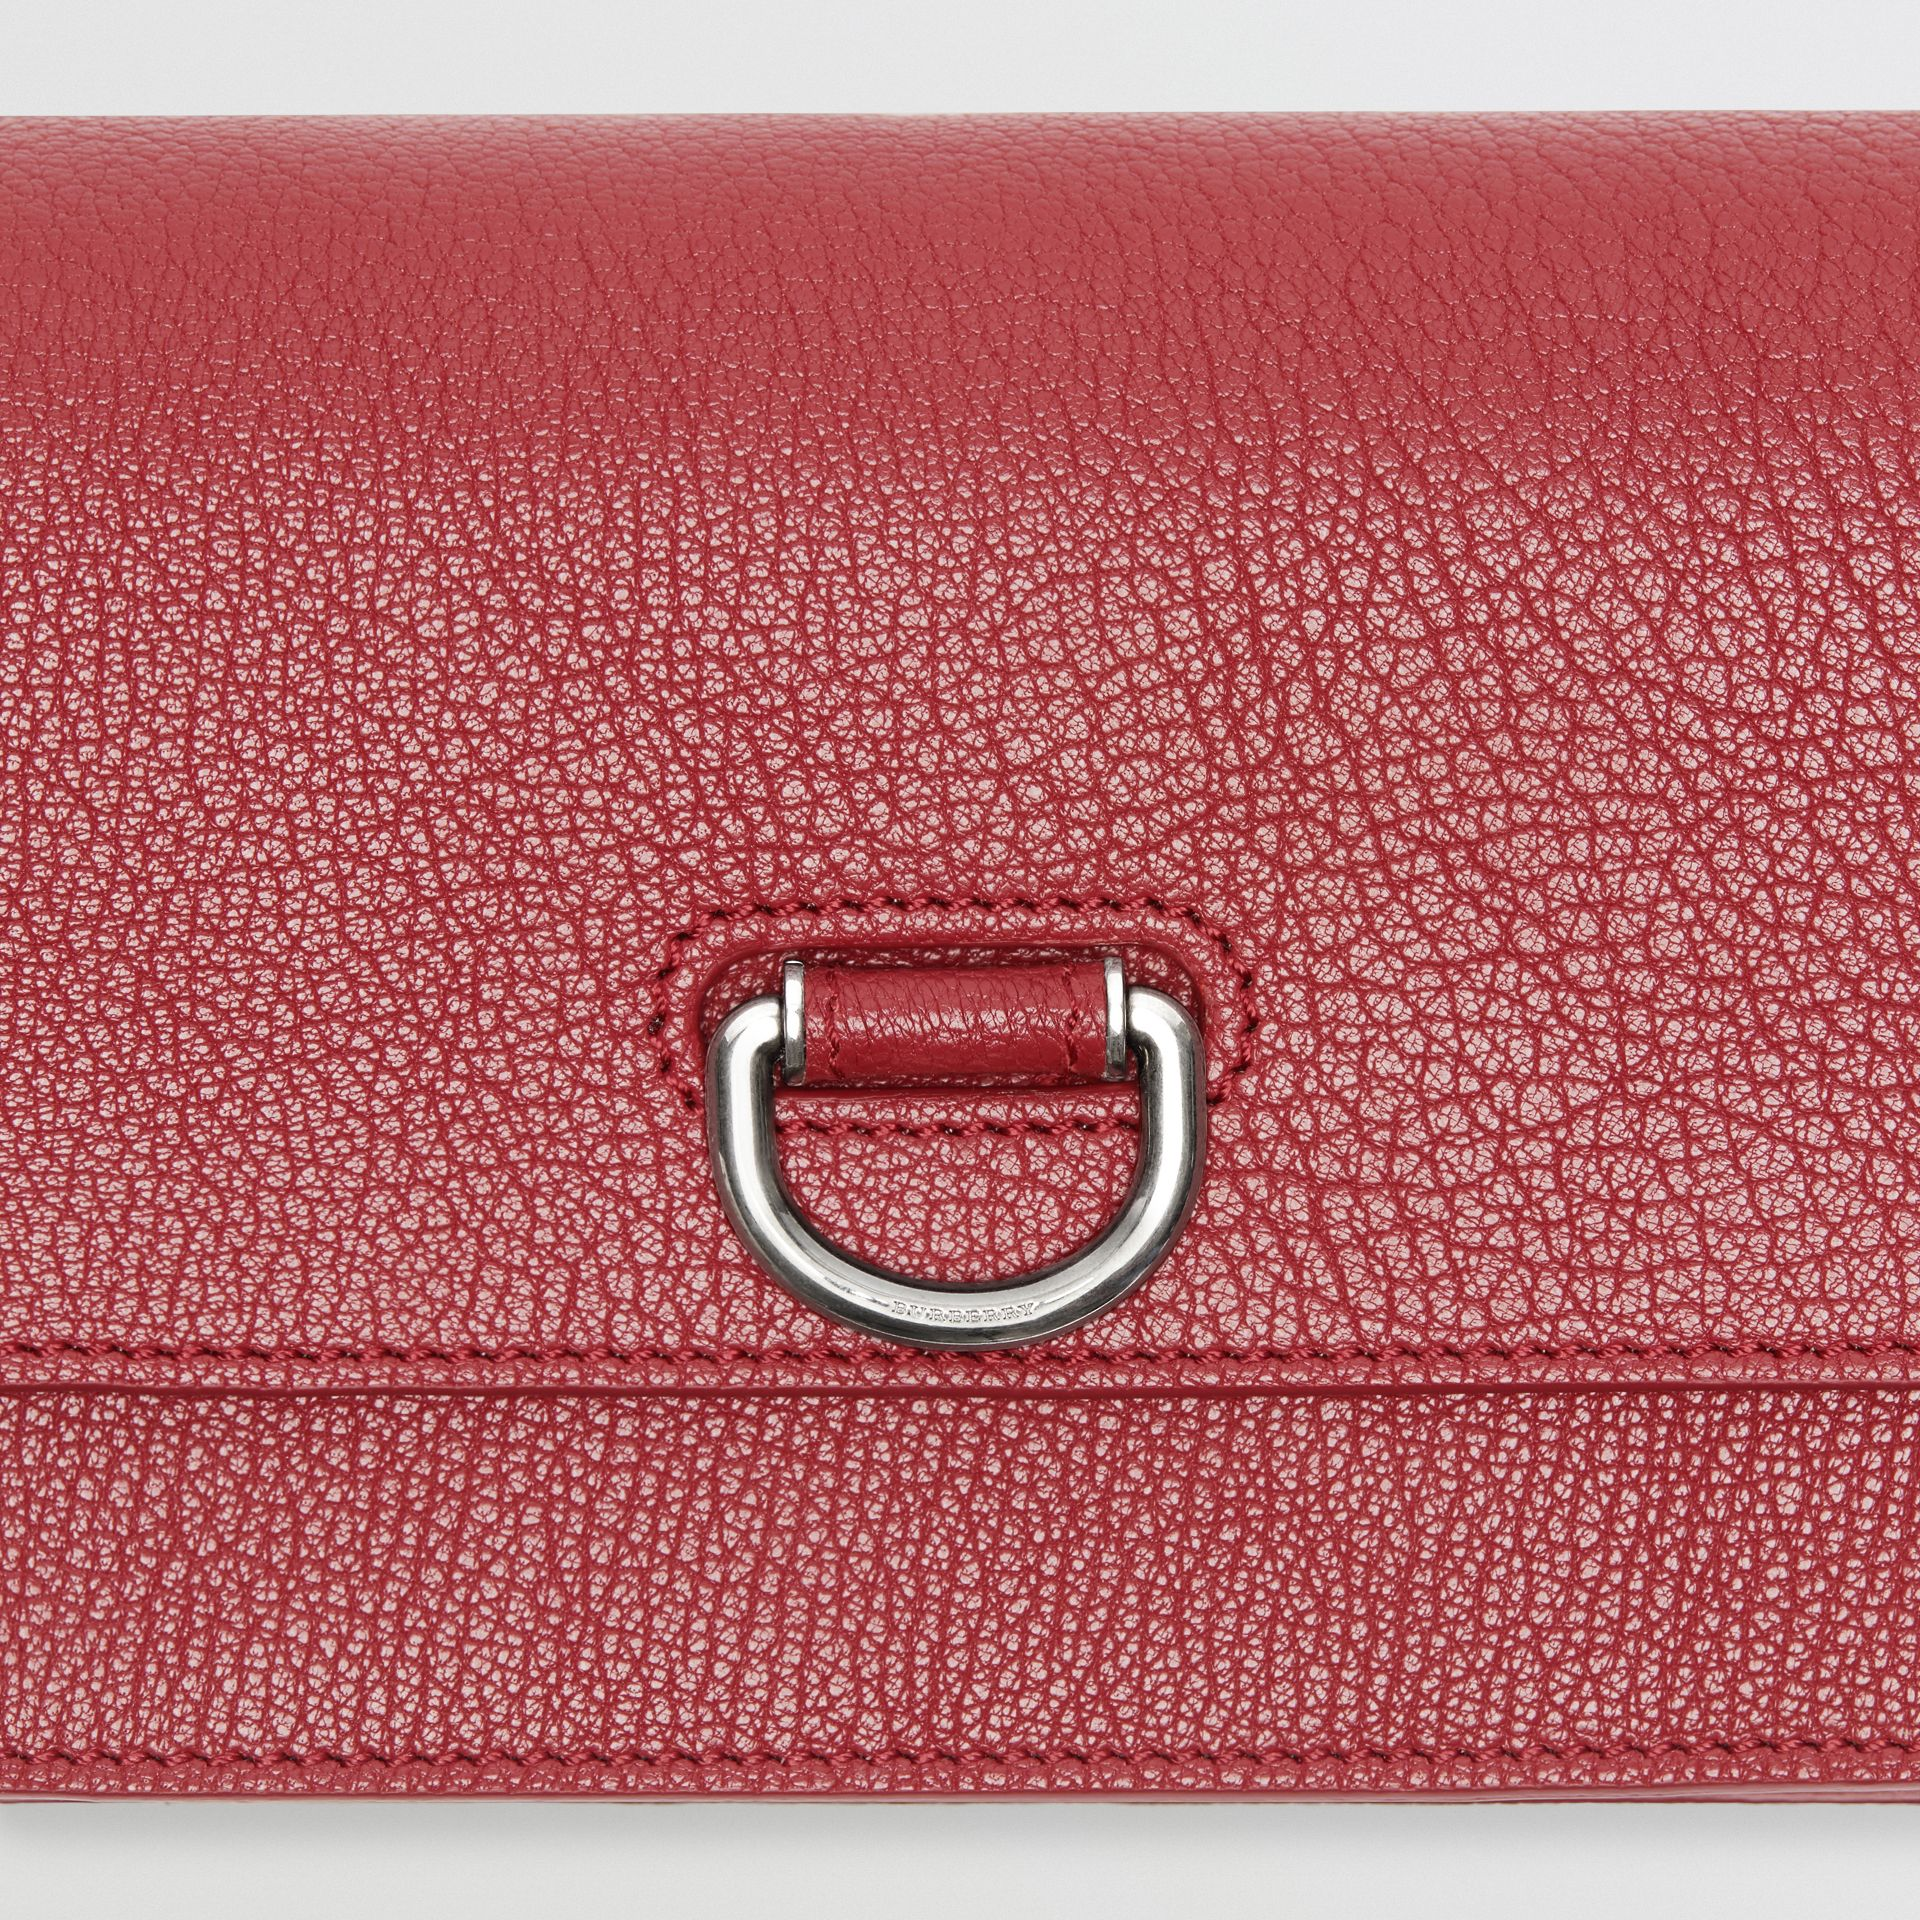 The Mini Leather D-ring Bag in Crimson - Women | Burberry - gallery image 1